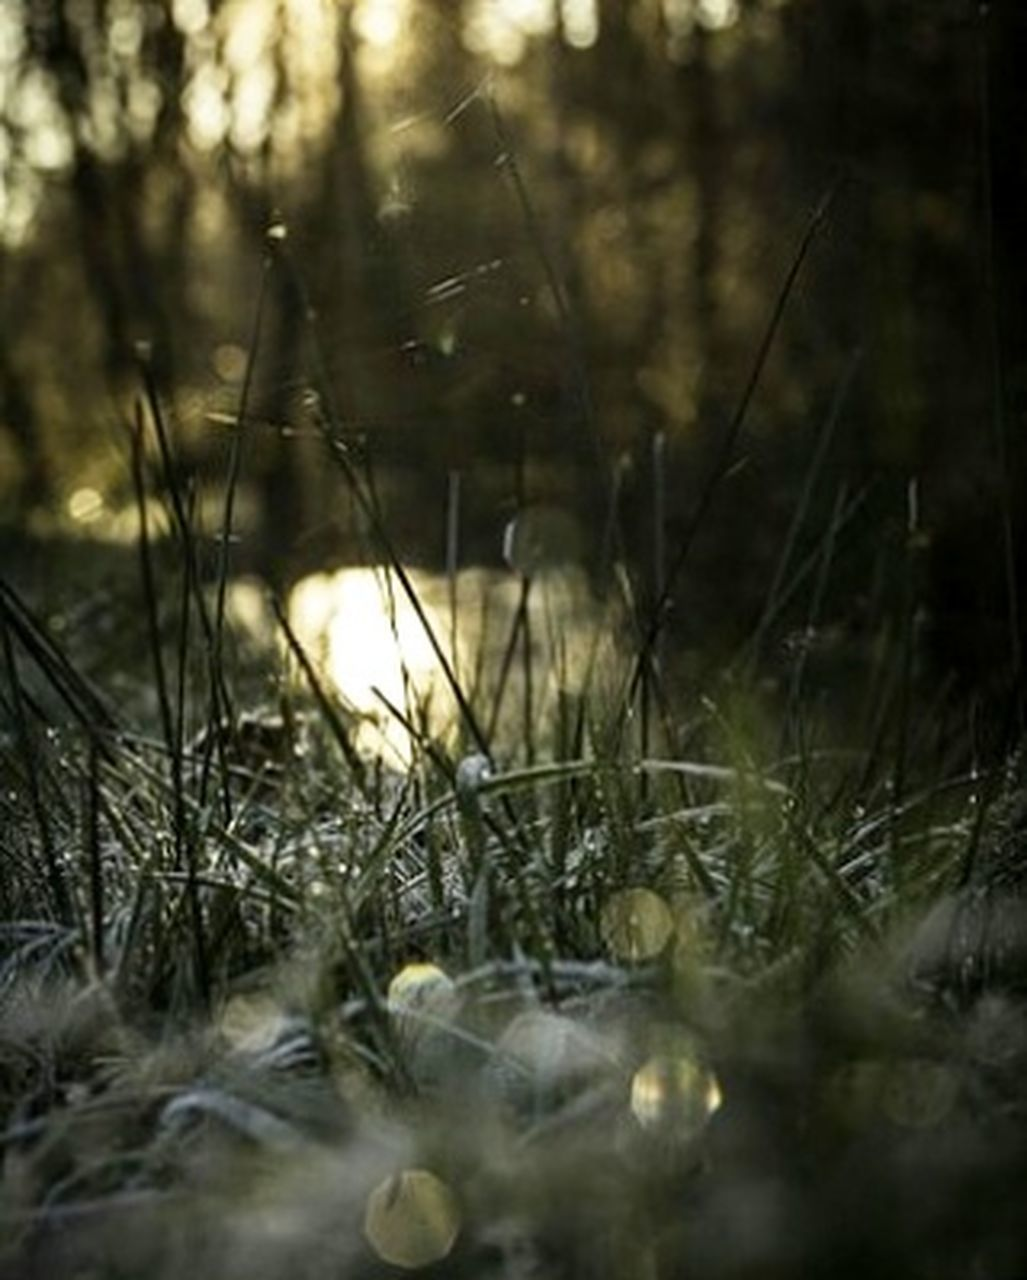 winter, nature, cold temperature, no people, plant, outdoors, snow, day, forest, snowflake, close-up, tree, freshness